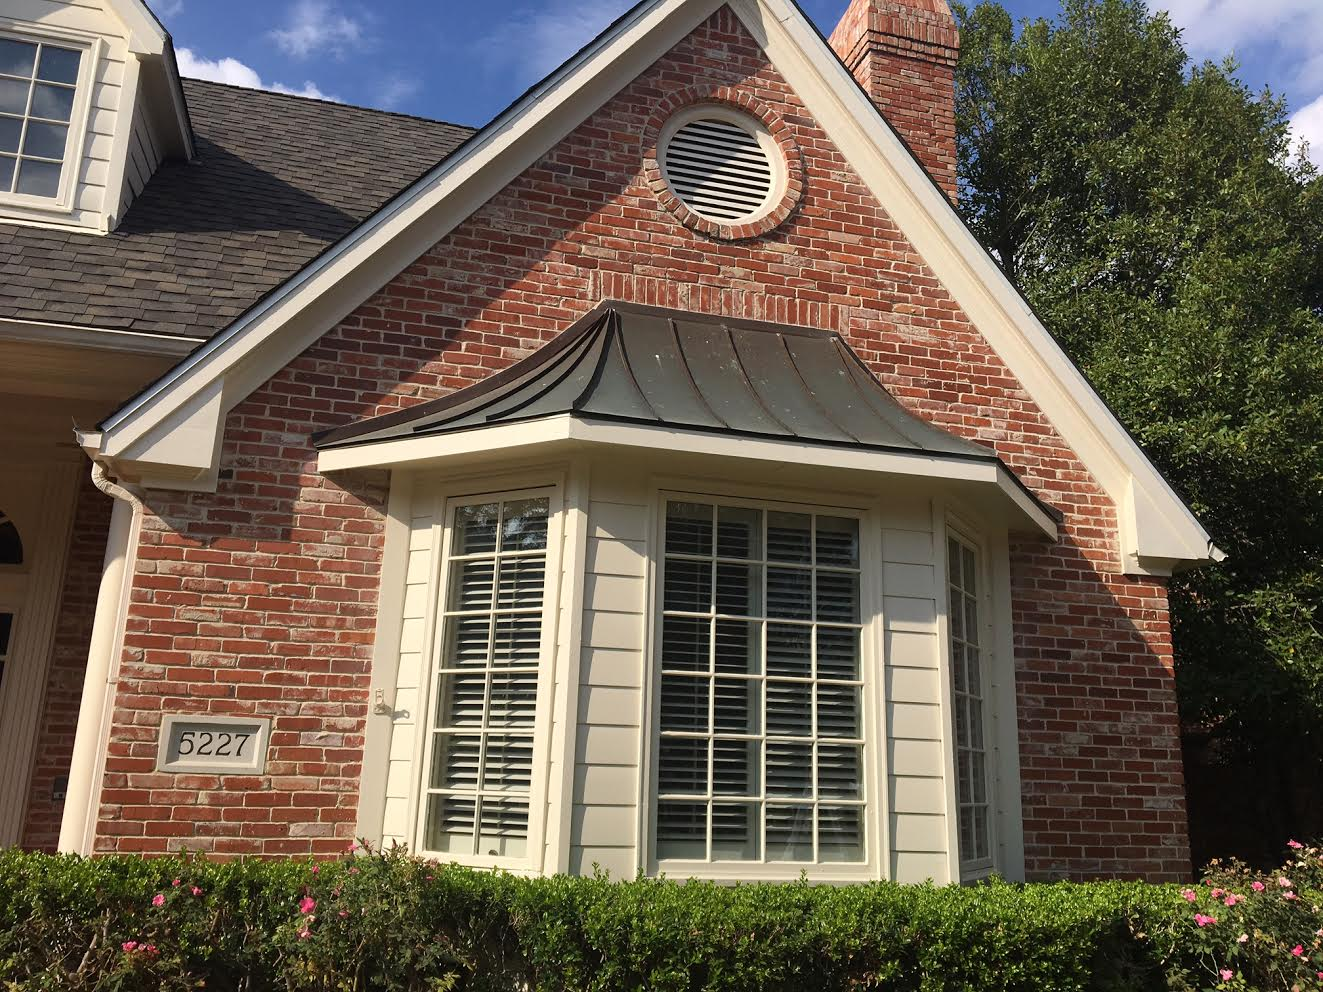 irongeate-roofing-north-texas-roofing-roof-company